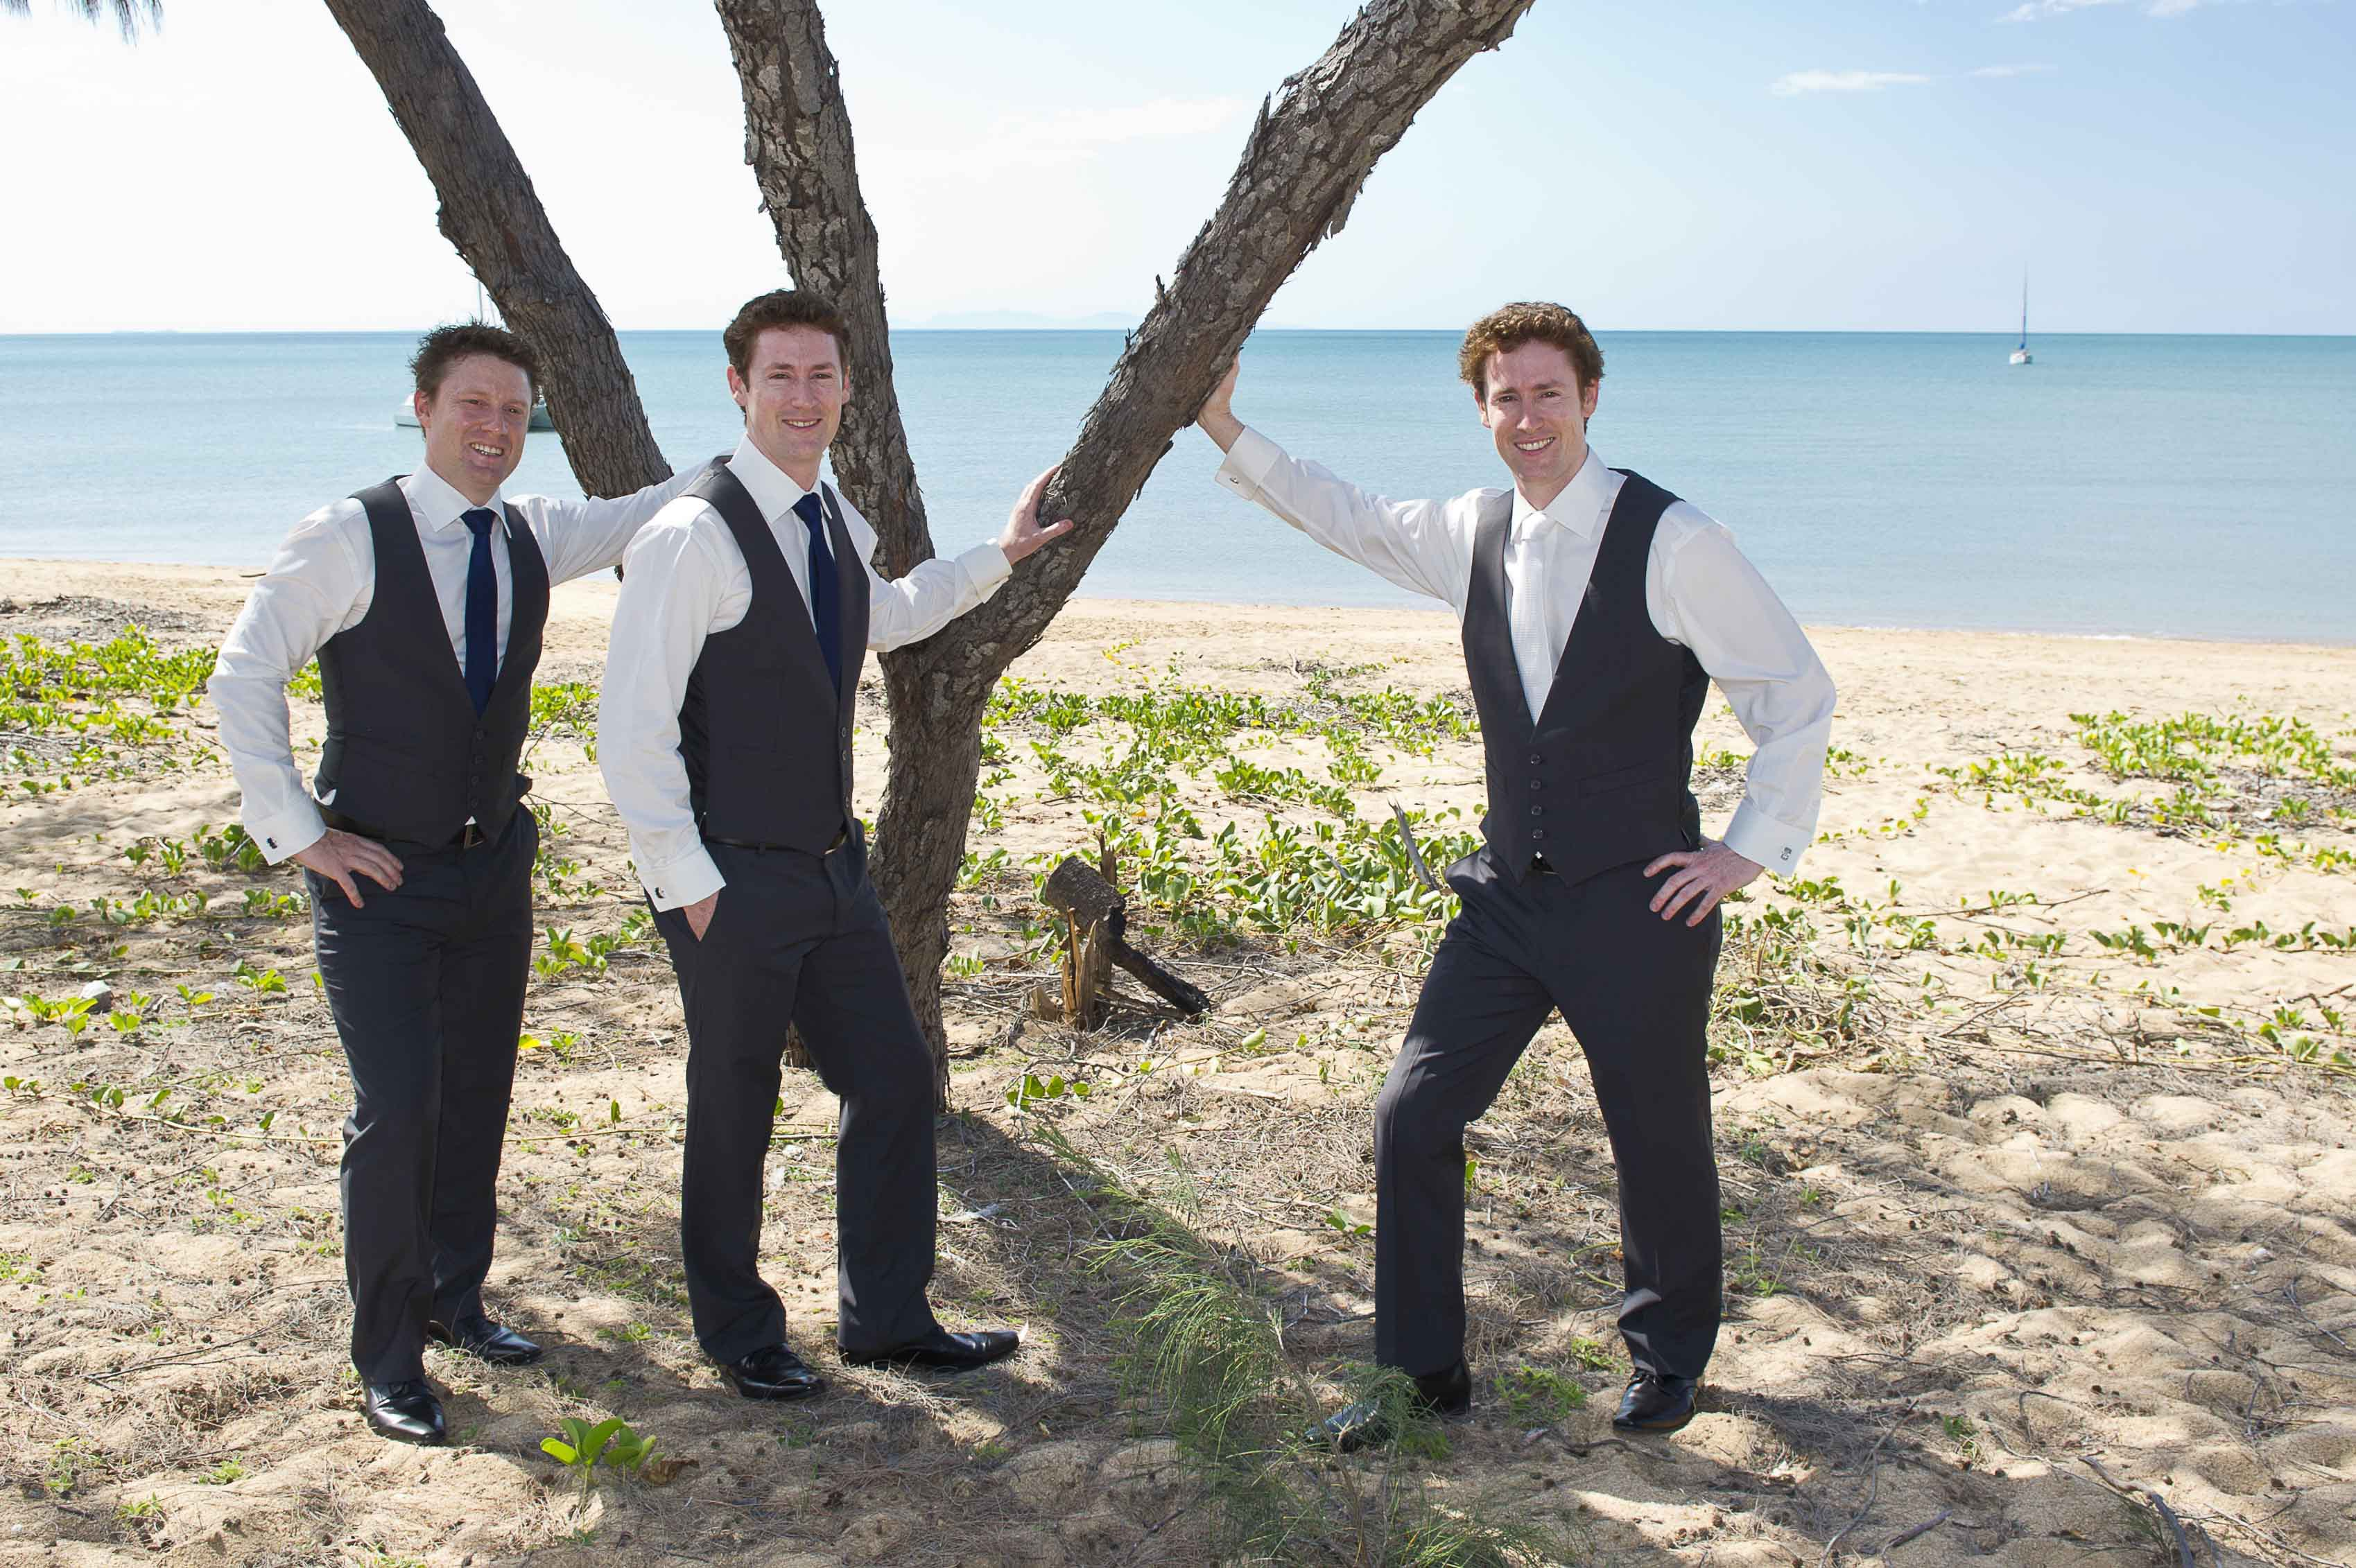 Groom with his friends by the calm water